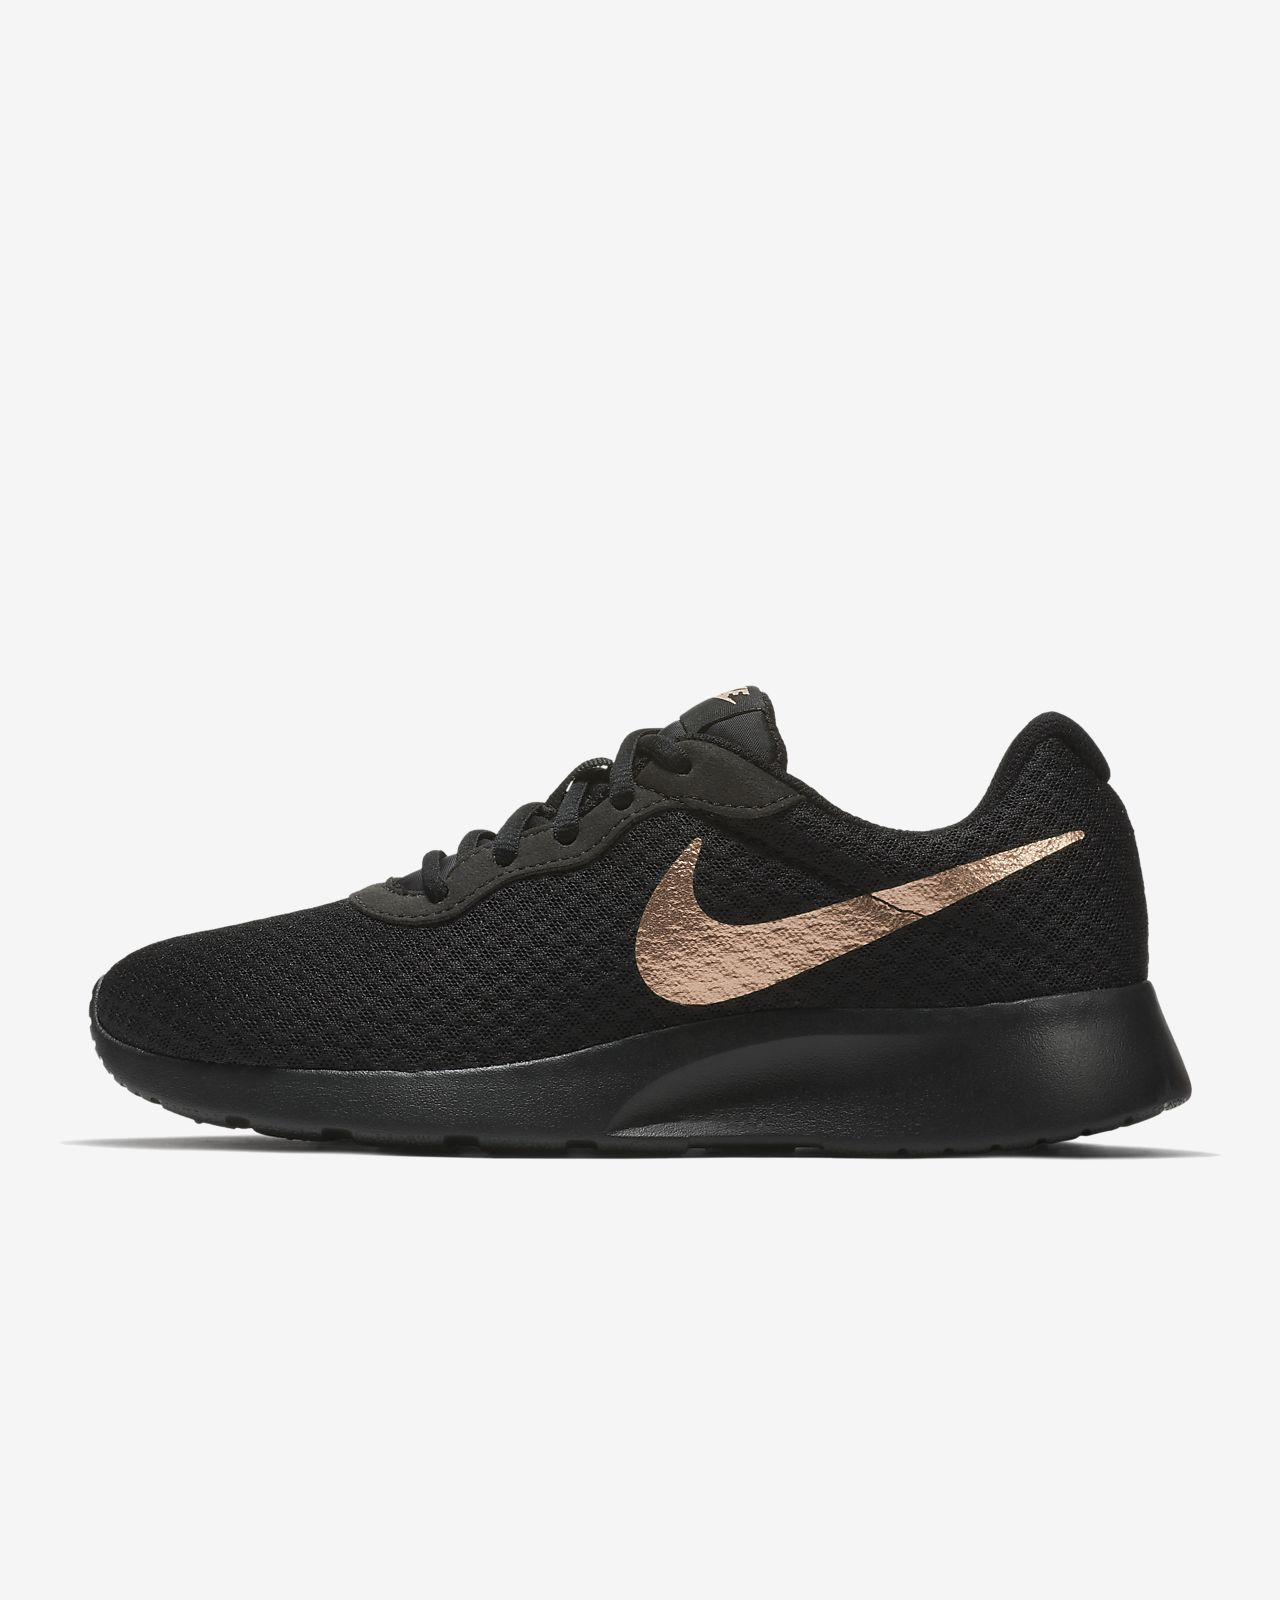 Low Resolution Nike Tanjun Women's Shoe Nike Tanjun Women's Shoe